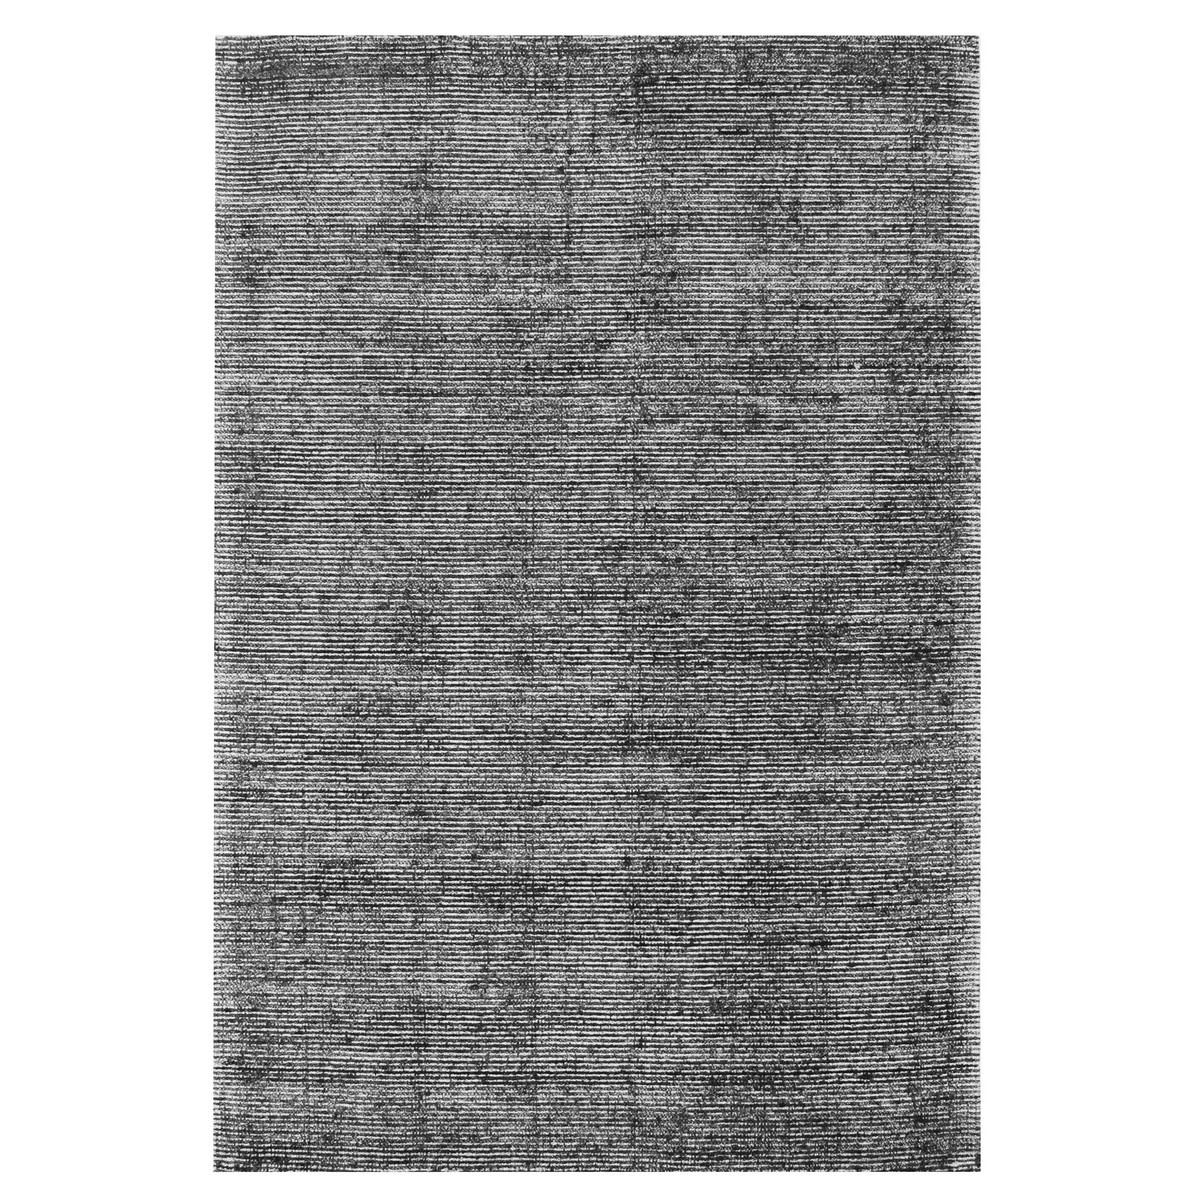 Allure Cloud Hand Loomed Modern Rug, 320x230cm, Black